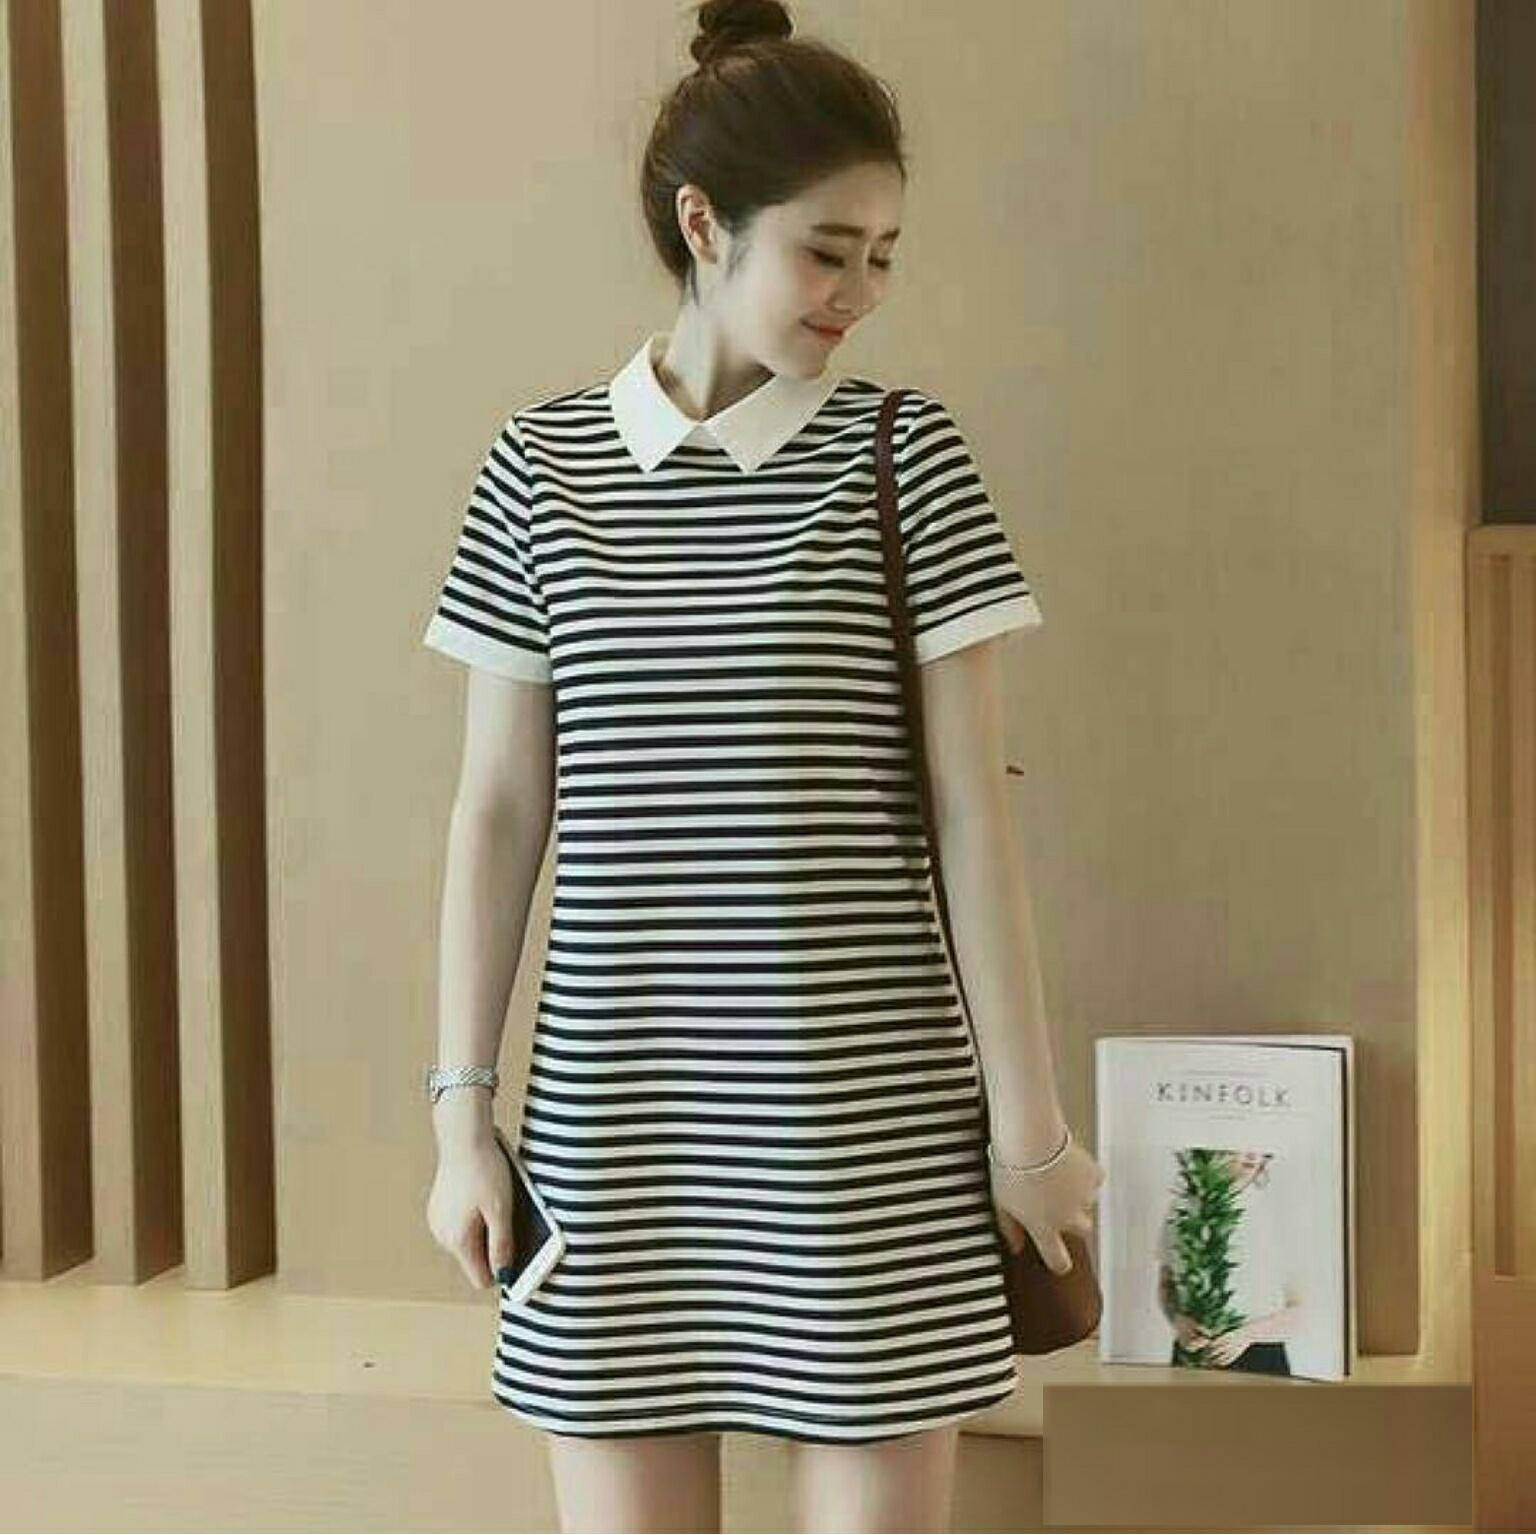 AG Apparel Dress Wk Fani Hitam / Dress Wanita / Fashion Wanita / Baju Kekinian / Dress Fashion / Dress Kaos Wanita / Dress T-shirt Wanita / Gaun Kaos Wanita / Atasan Murah / Dress Santai Wanita / Gaun Remaja / Gaun Kasual / Dress Casual Wanita